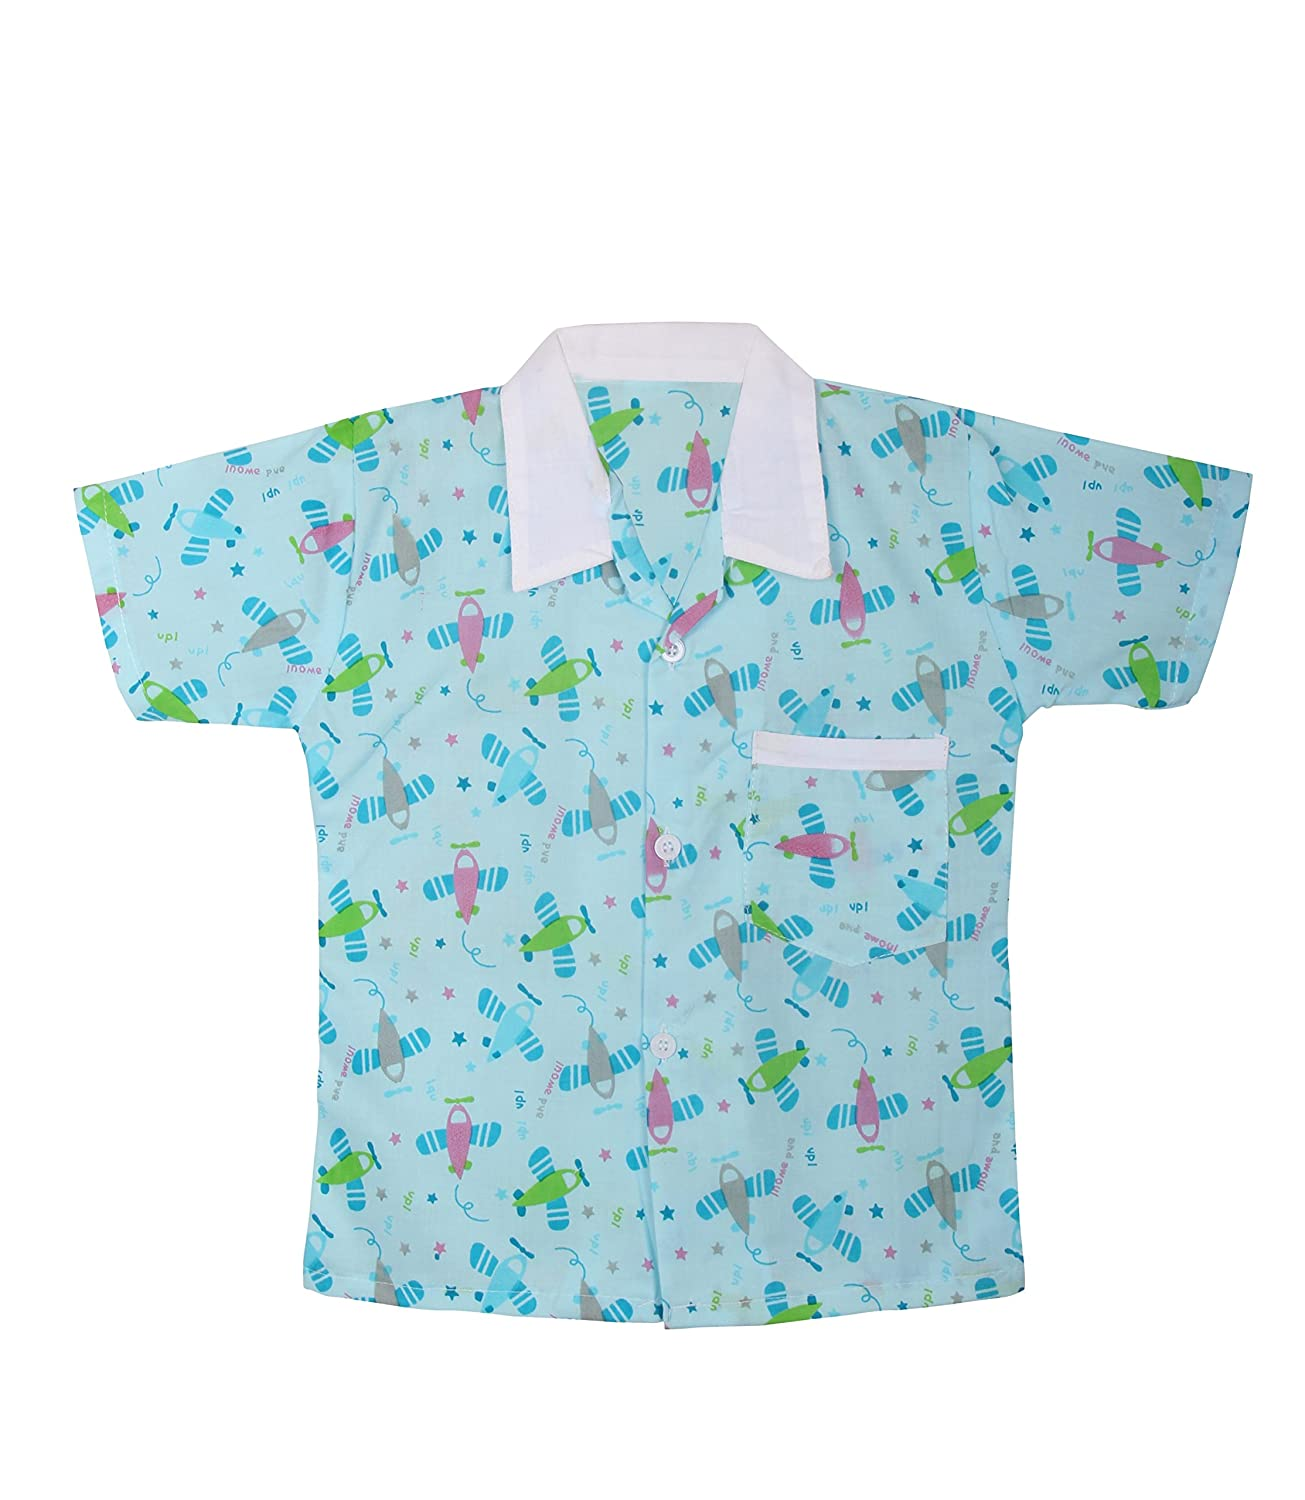 b297252106 BownBee Printed Cotton Nightdress/Nightwear/Nightsuit for Boys/Kids -  Green: Amazon.in: Clothing & Accessories